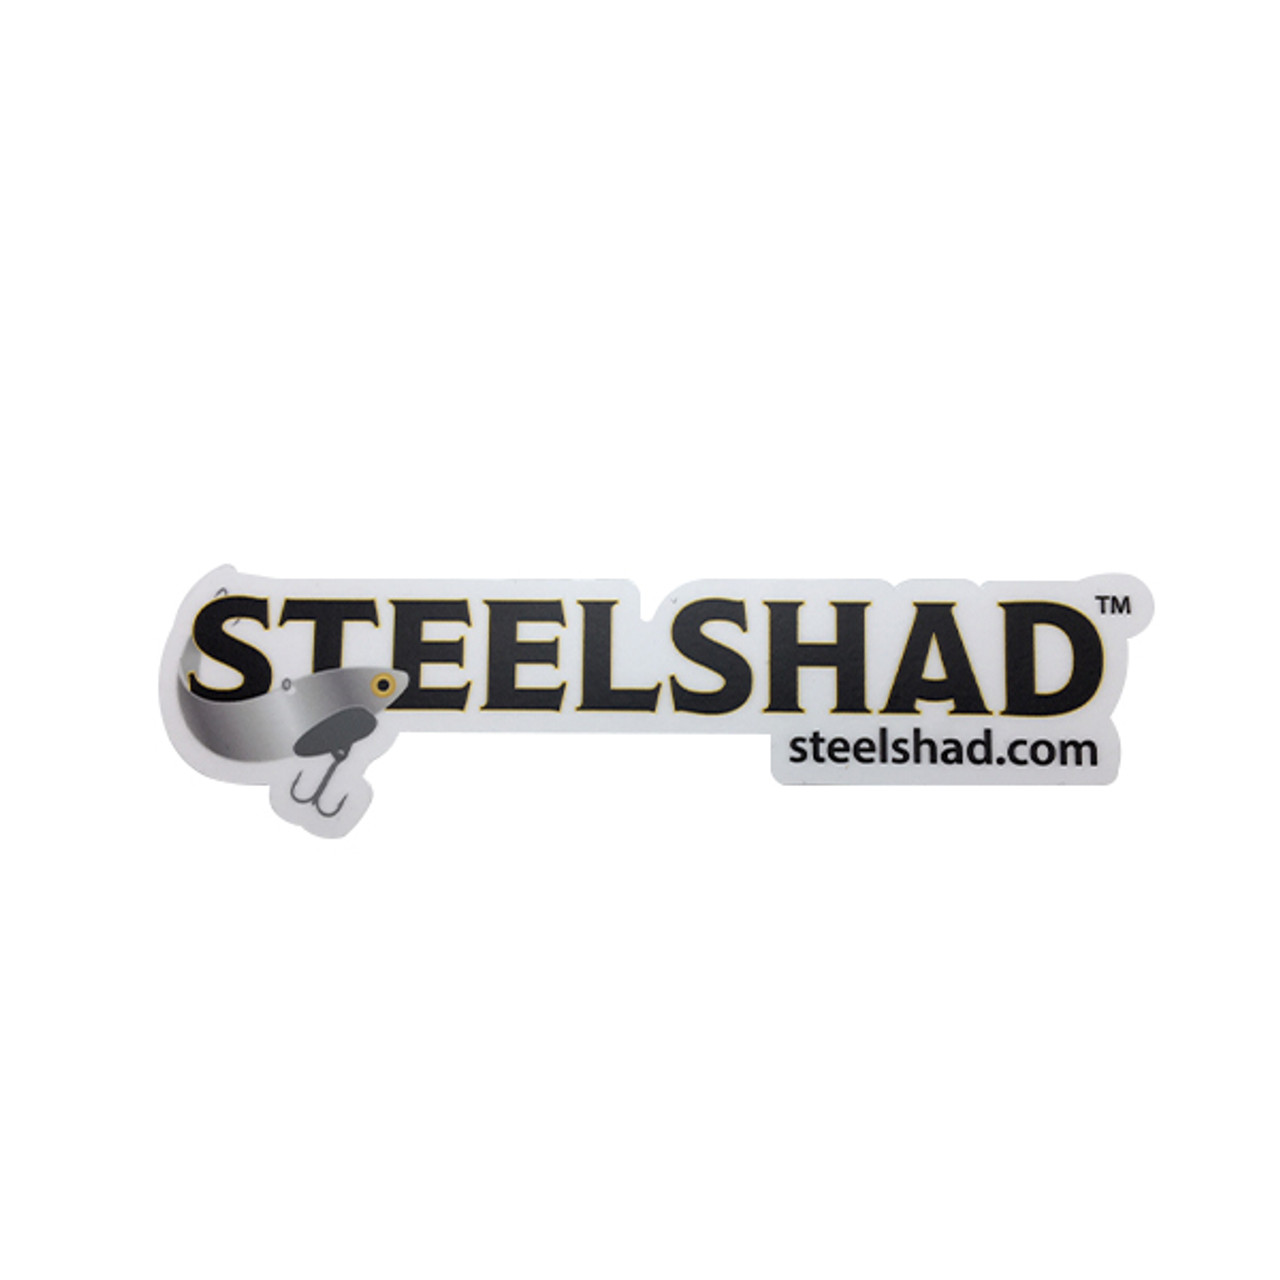 SteelShad Logo Sticker - Large